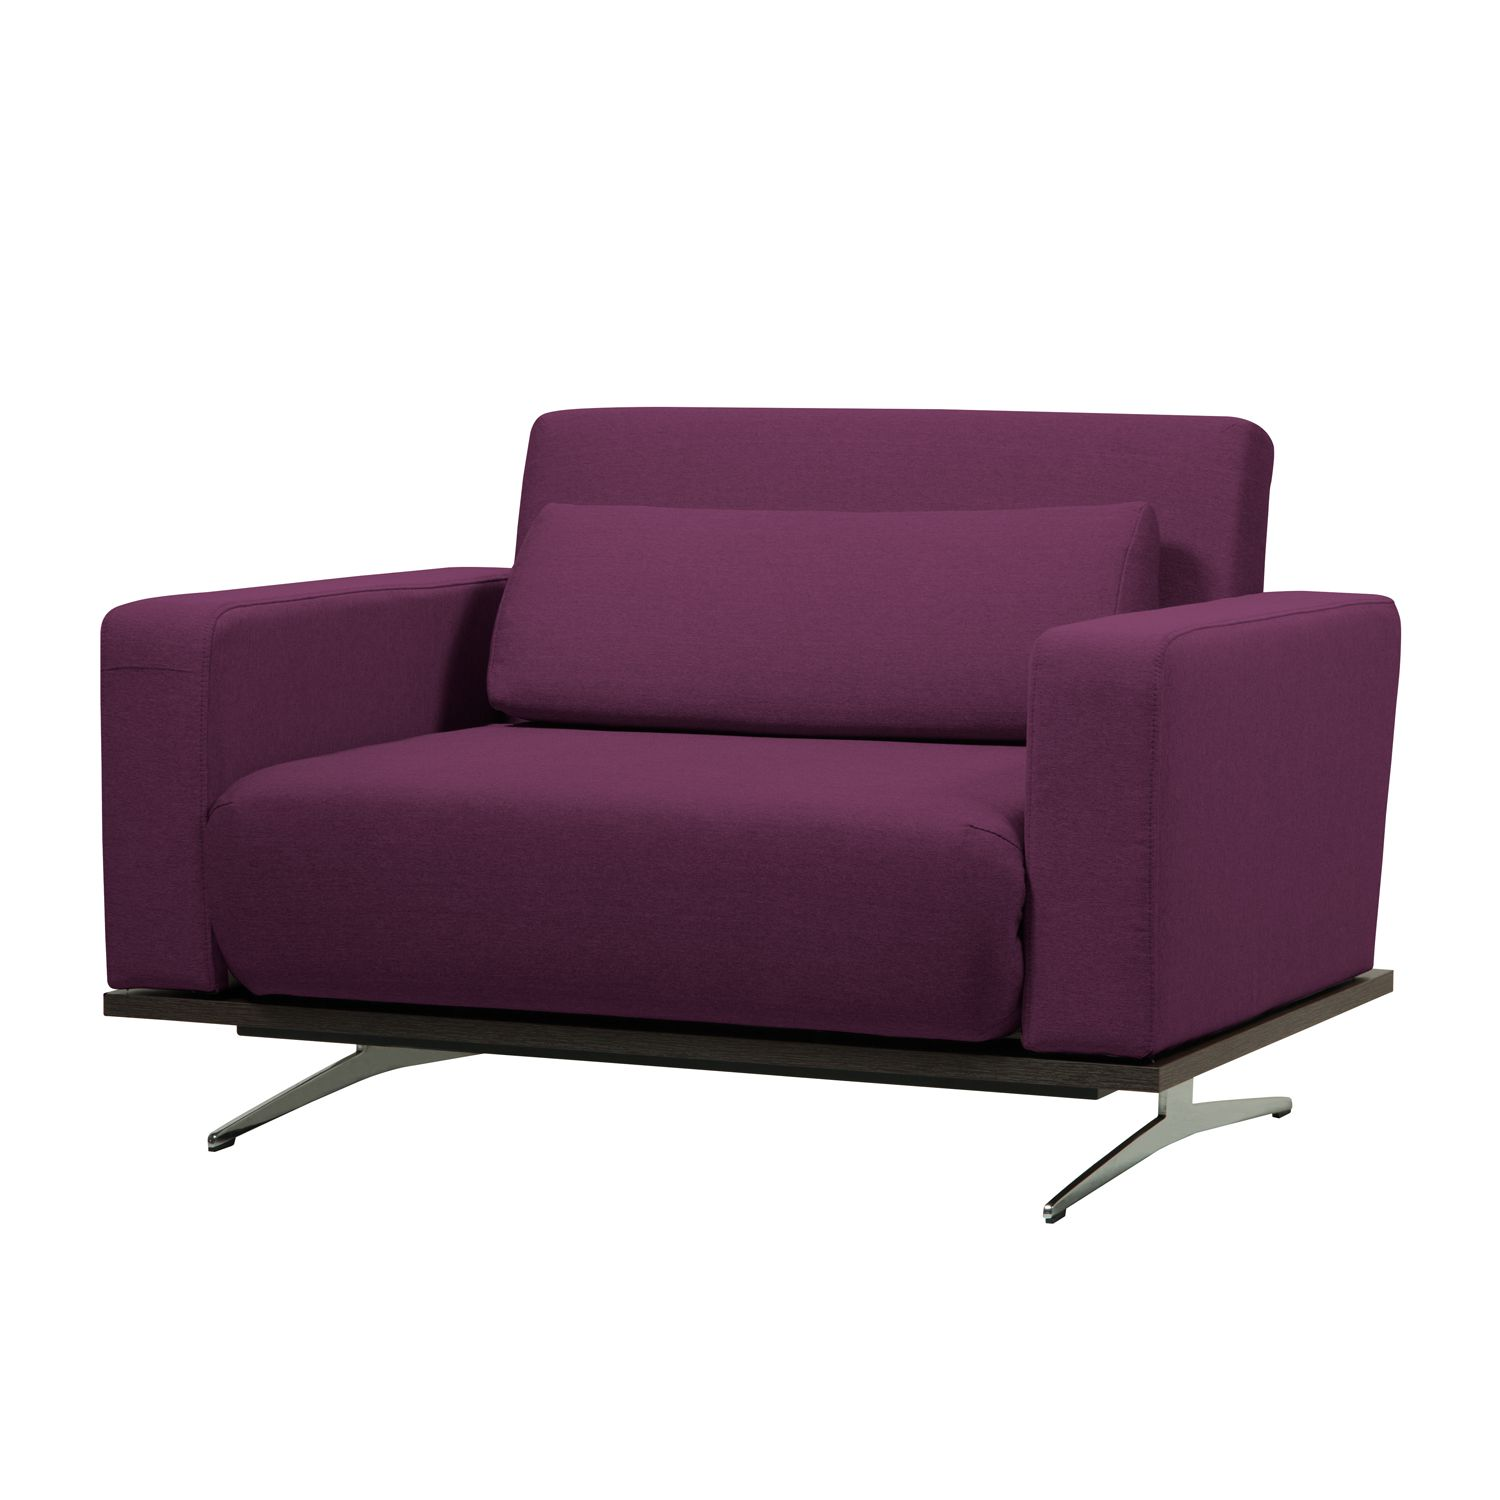 Schlafsessel Copperfield Plus I - Webstoff - Stoff Zahira Aubergine